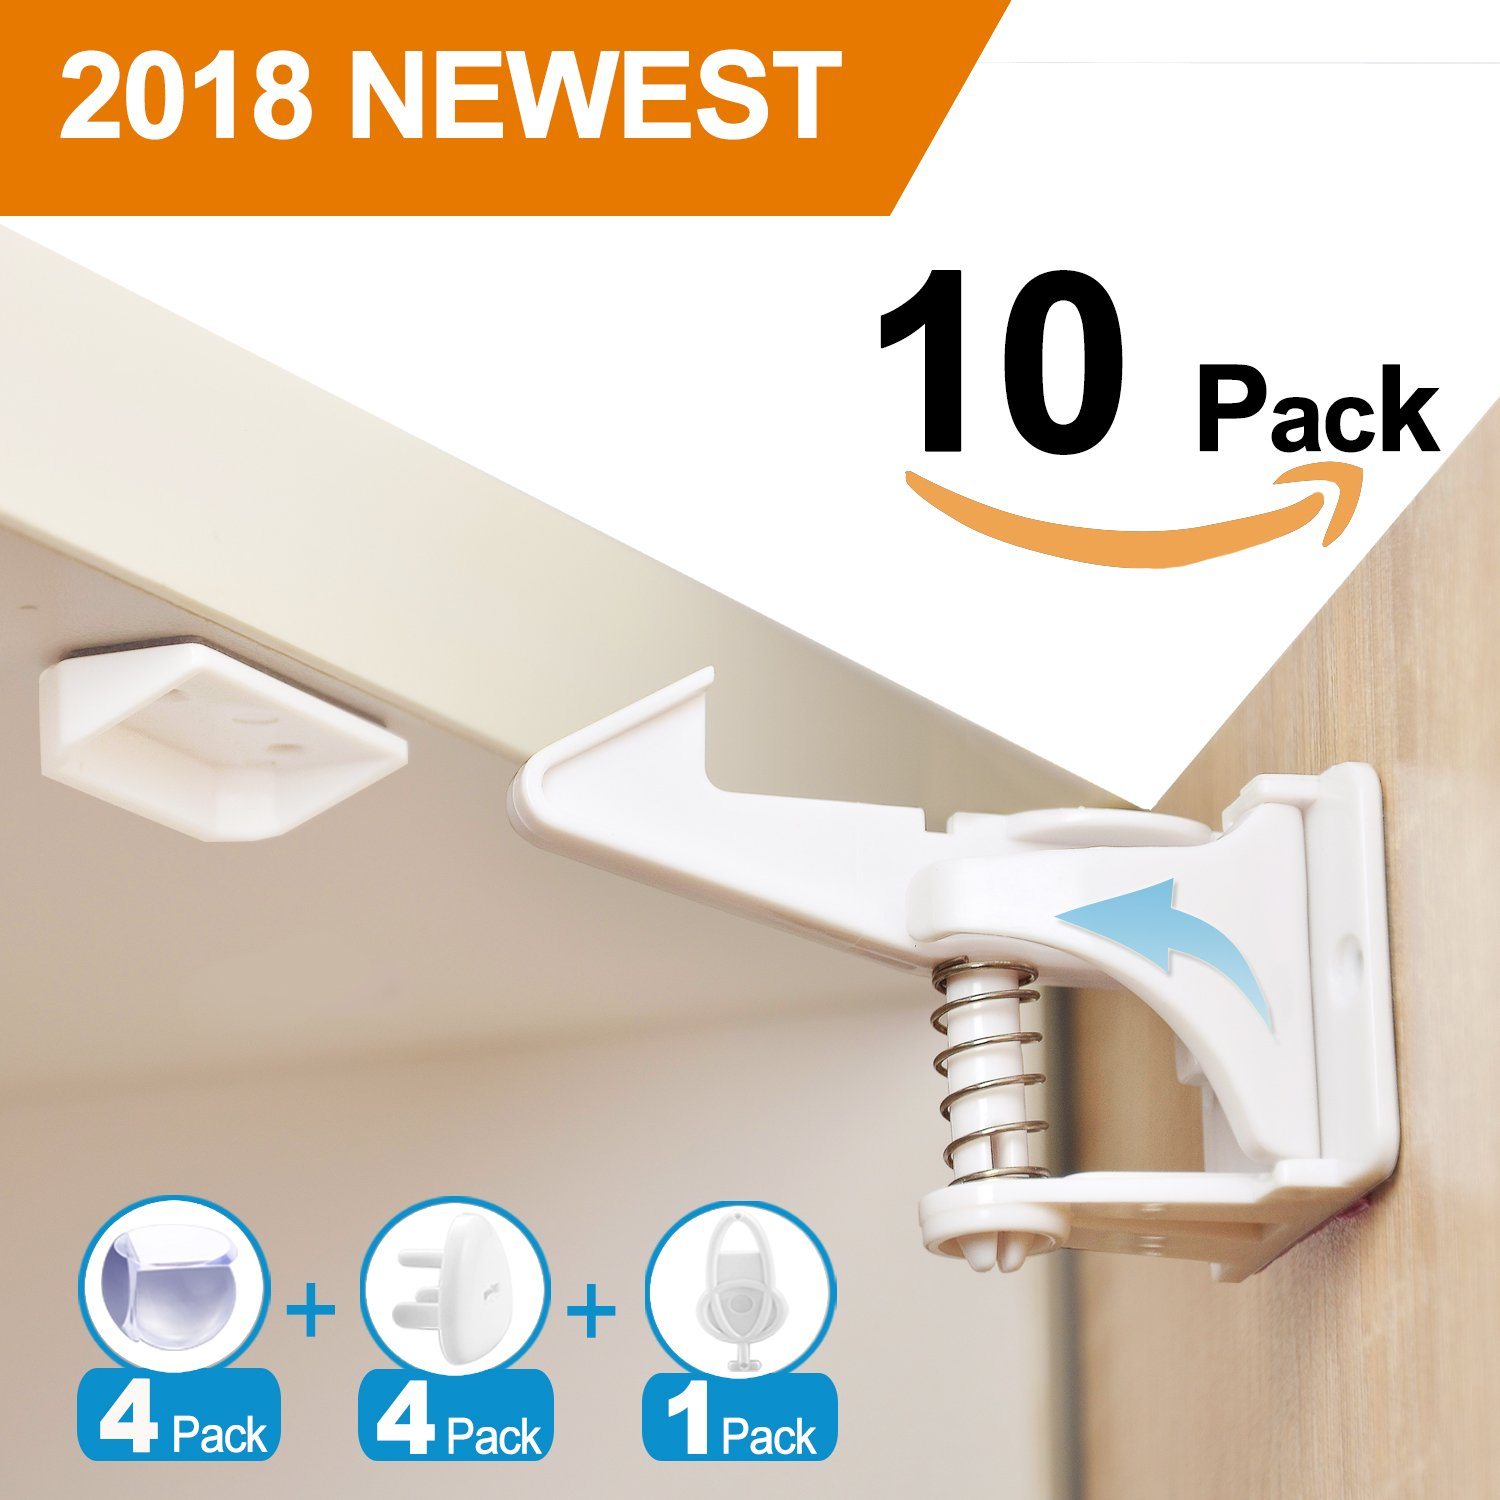 10 Pack Cabinet Locks Child Safety Baby Proofing Cabinet and Drawers Latches, UPGRADED 3M Adhesives No Drilling No Screws Installation, Invisible Design White MATT MURS